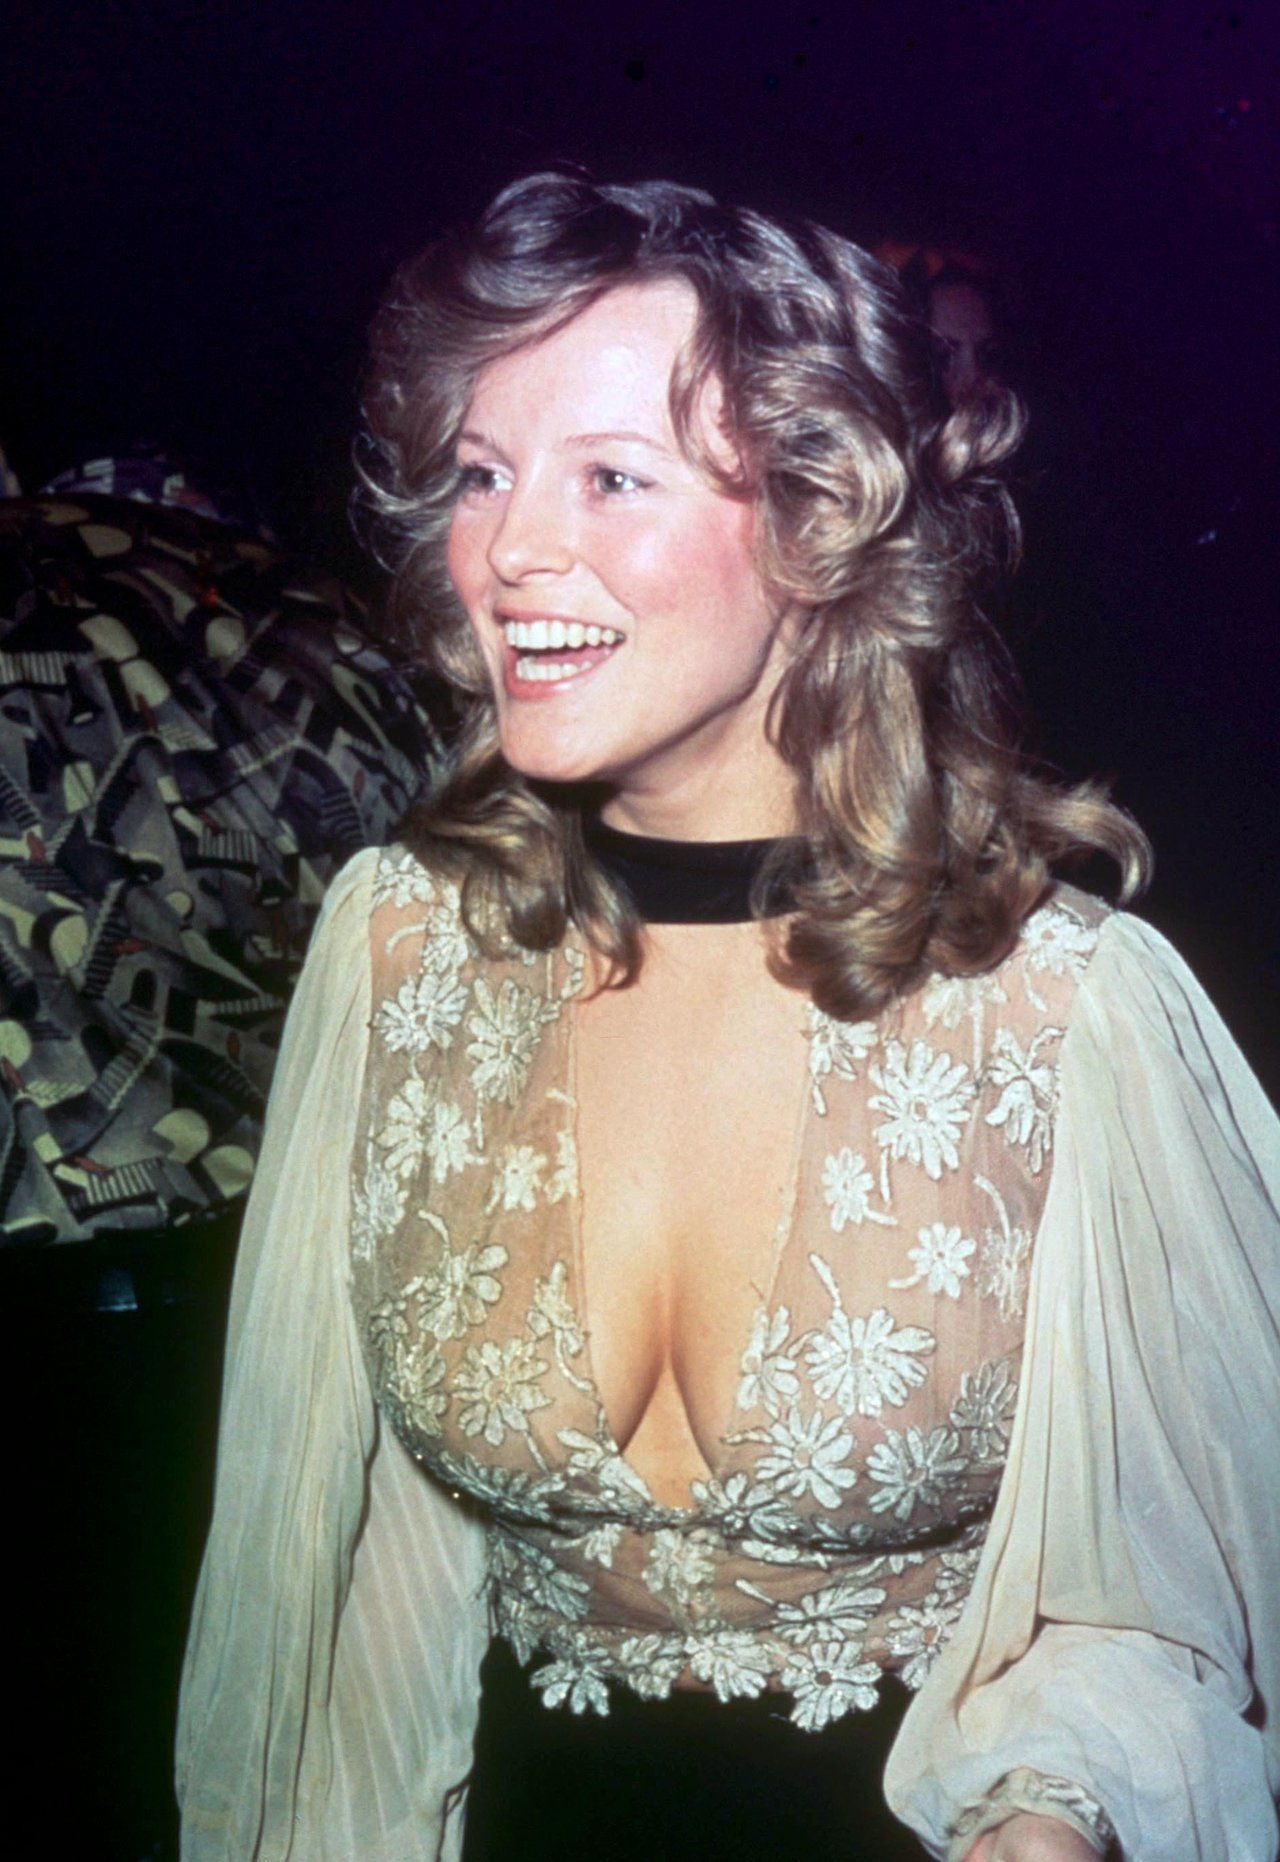 Apologise, Cheryl ladd celebrity there are